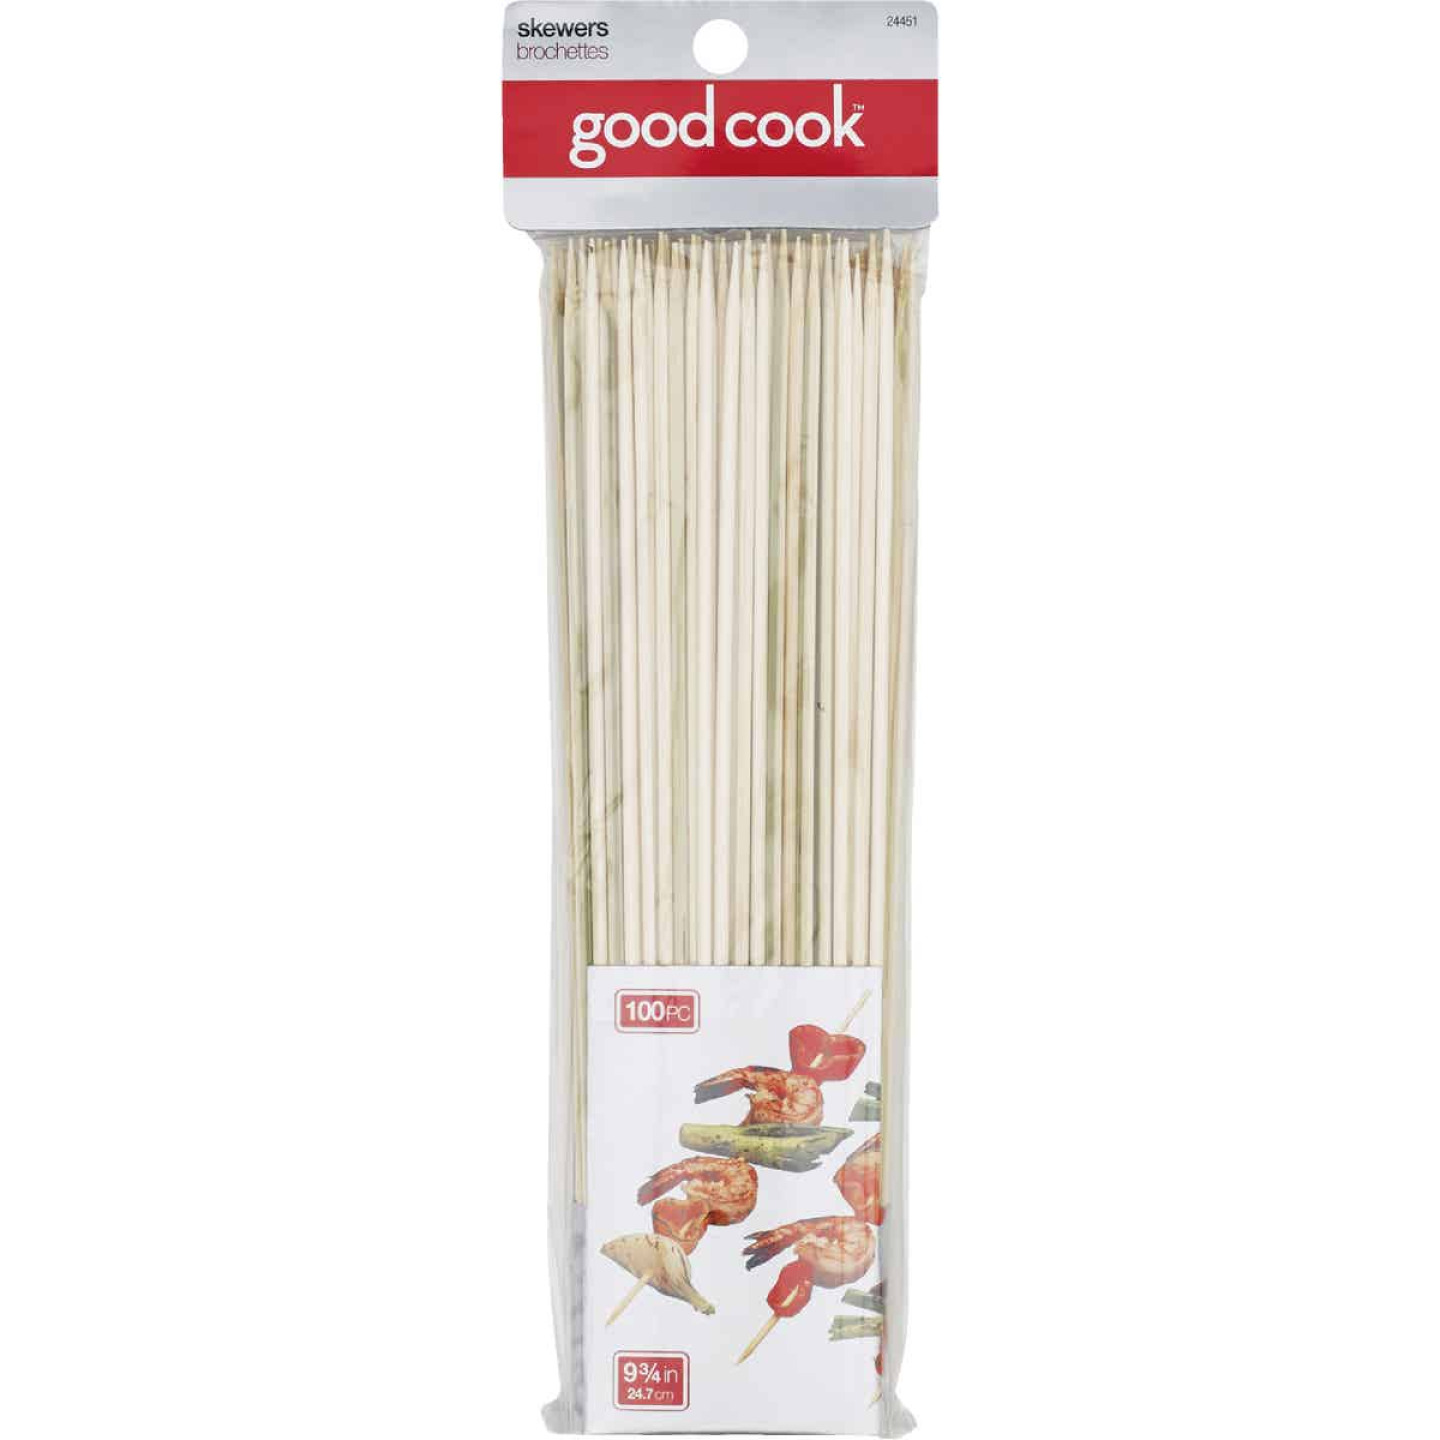 Goodcook 9.75 In. Bamboo Skewer (100-Count) Image 1